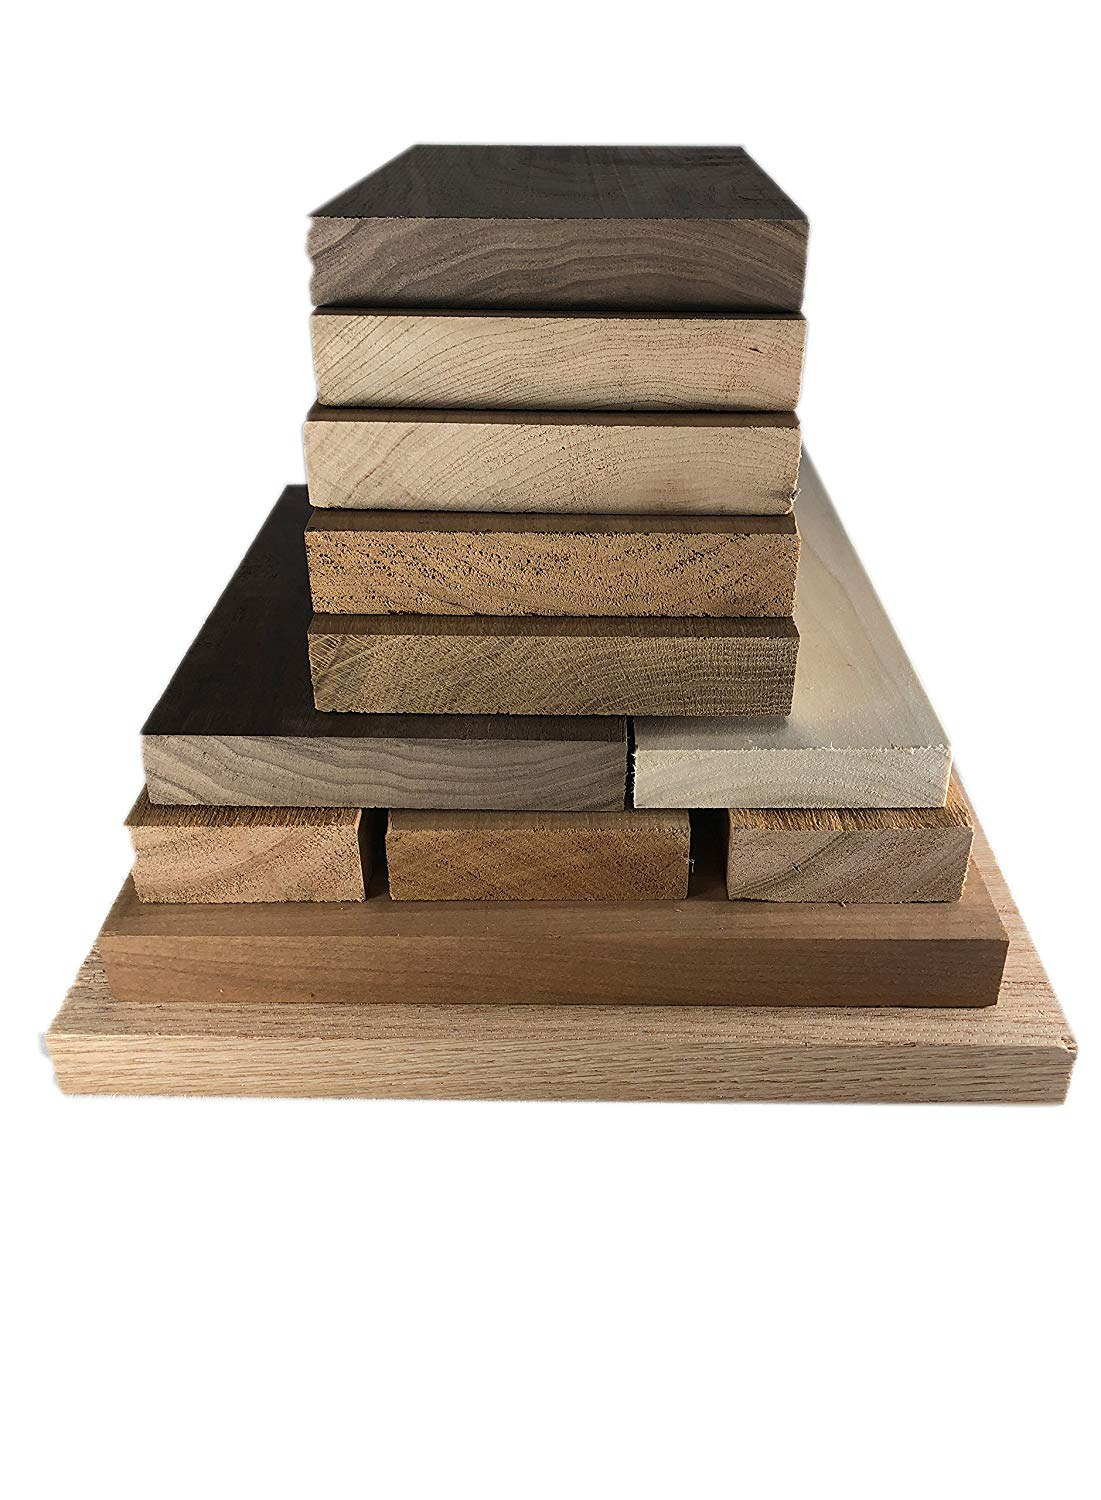 Hardwood Lumber Assortment - Mixed Species - Large Box of Hobby Wood – Perfect Boards – Clear Lumber. No Cut-Offs, Scrap, Defects, Knots, and End Checks. Lumber Perfect for Odds and Ends.